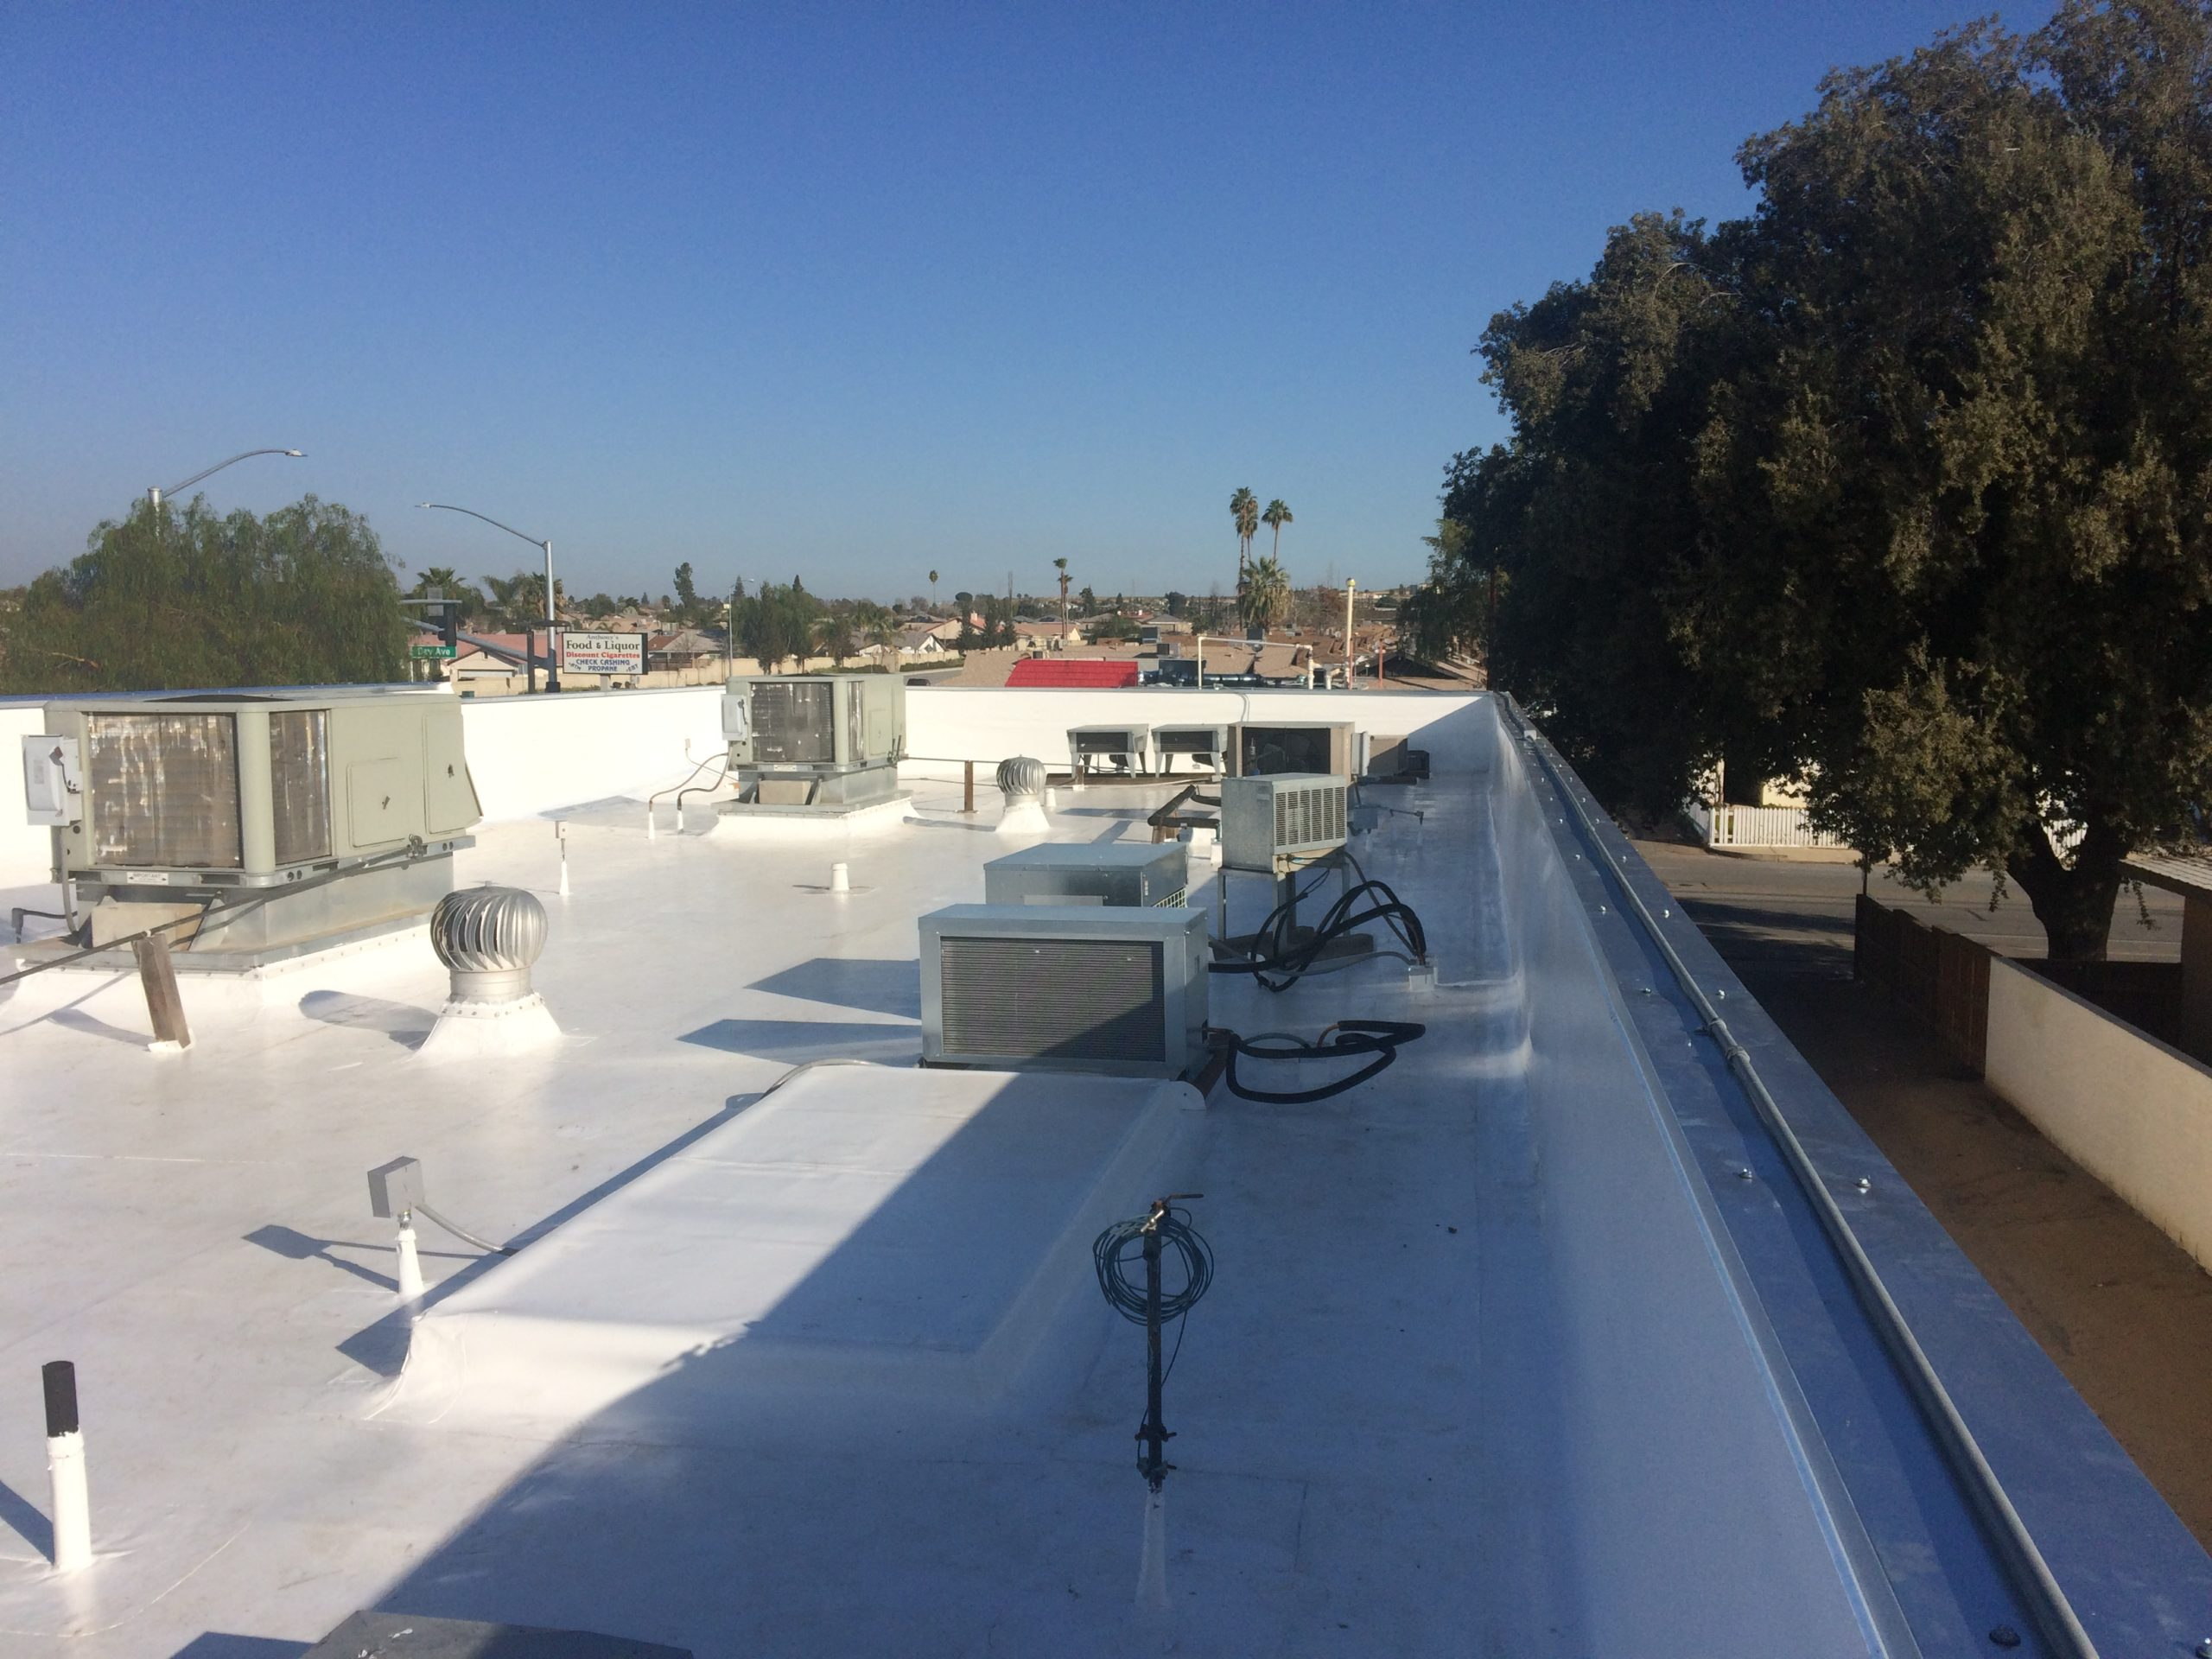 A Los Angeles building's rooftop with a new roof drain system